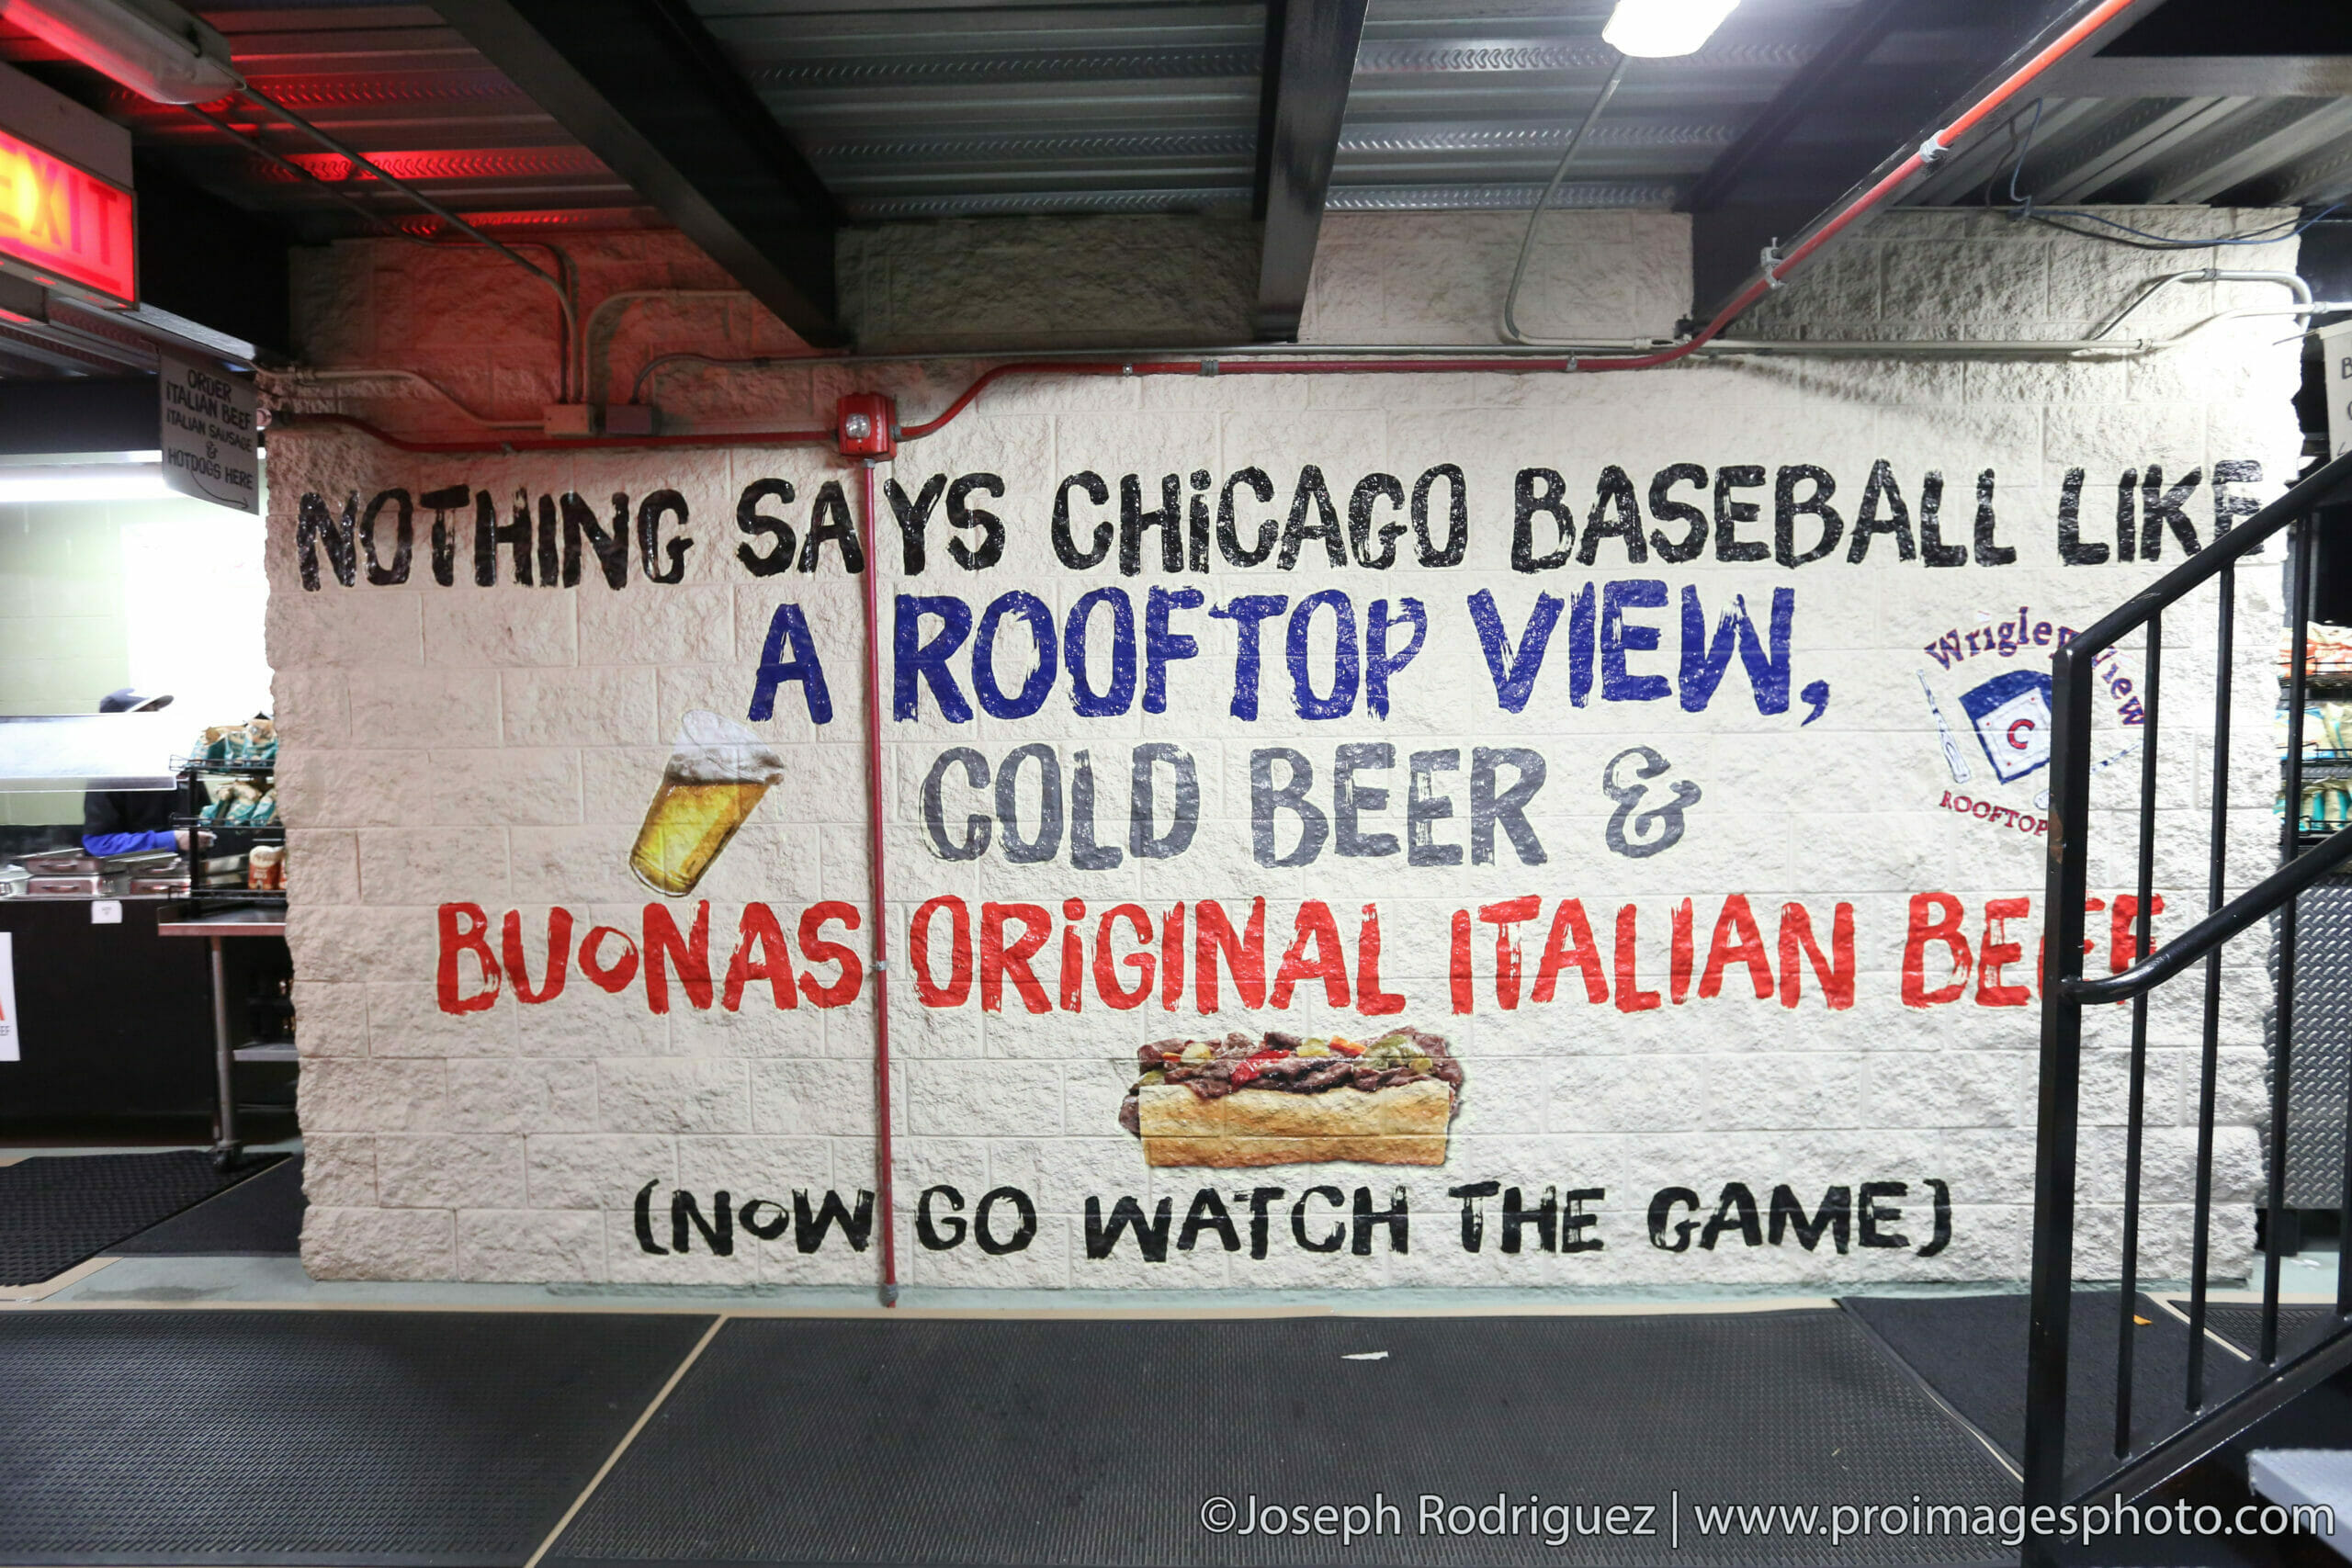 Sign inside a rooftop venue that allows people to see the Chicago Cubs